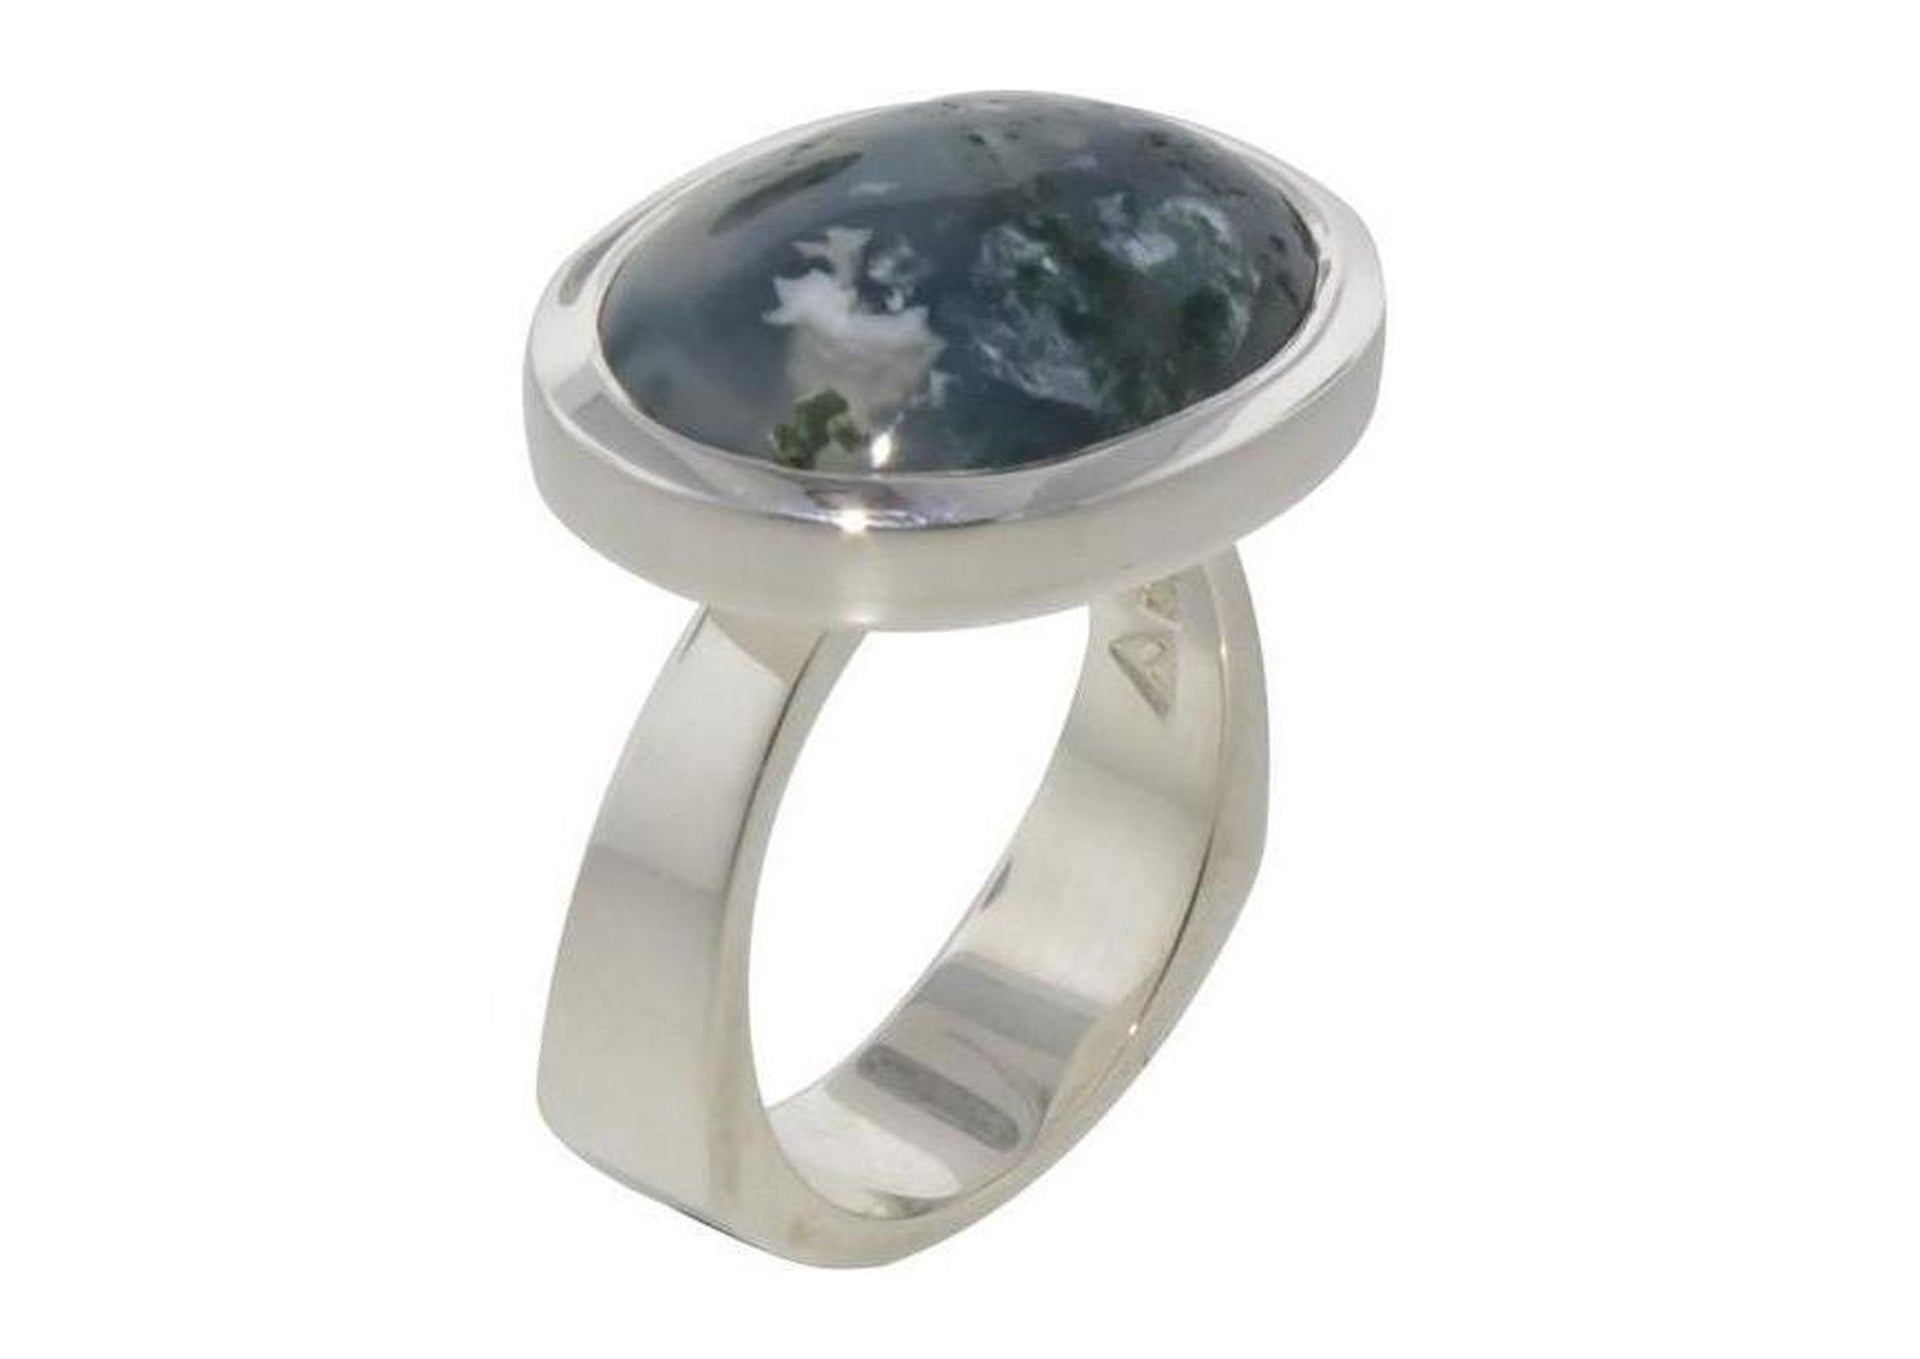 Unique Moss Agate Ring Design   - Jens Hansen